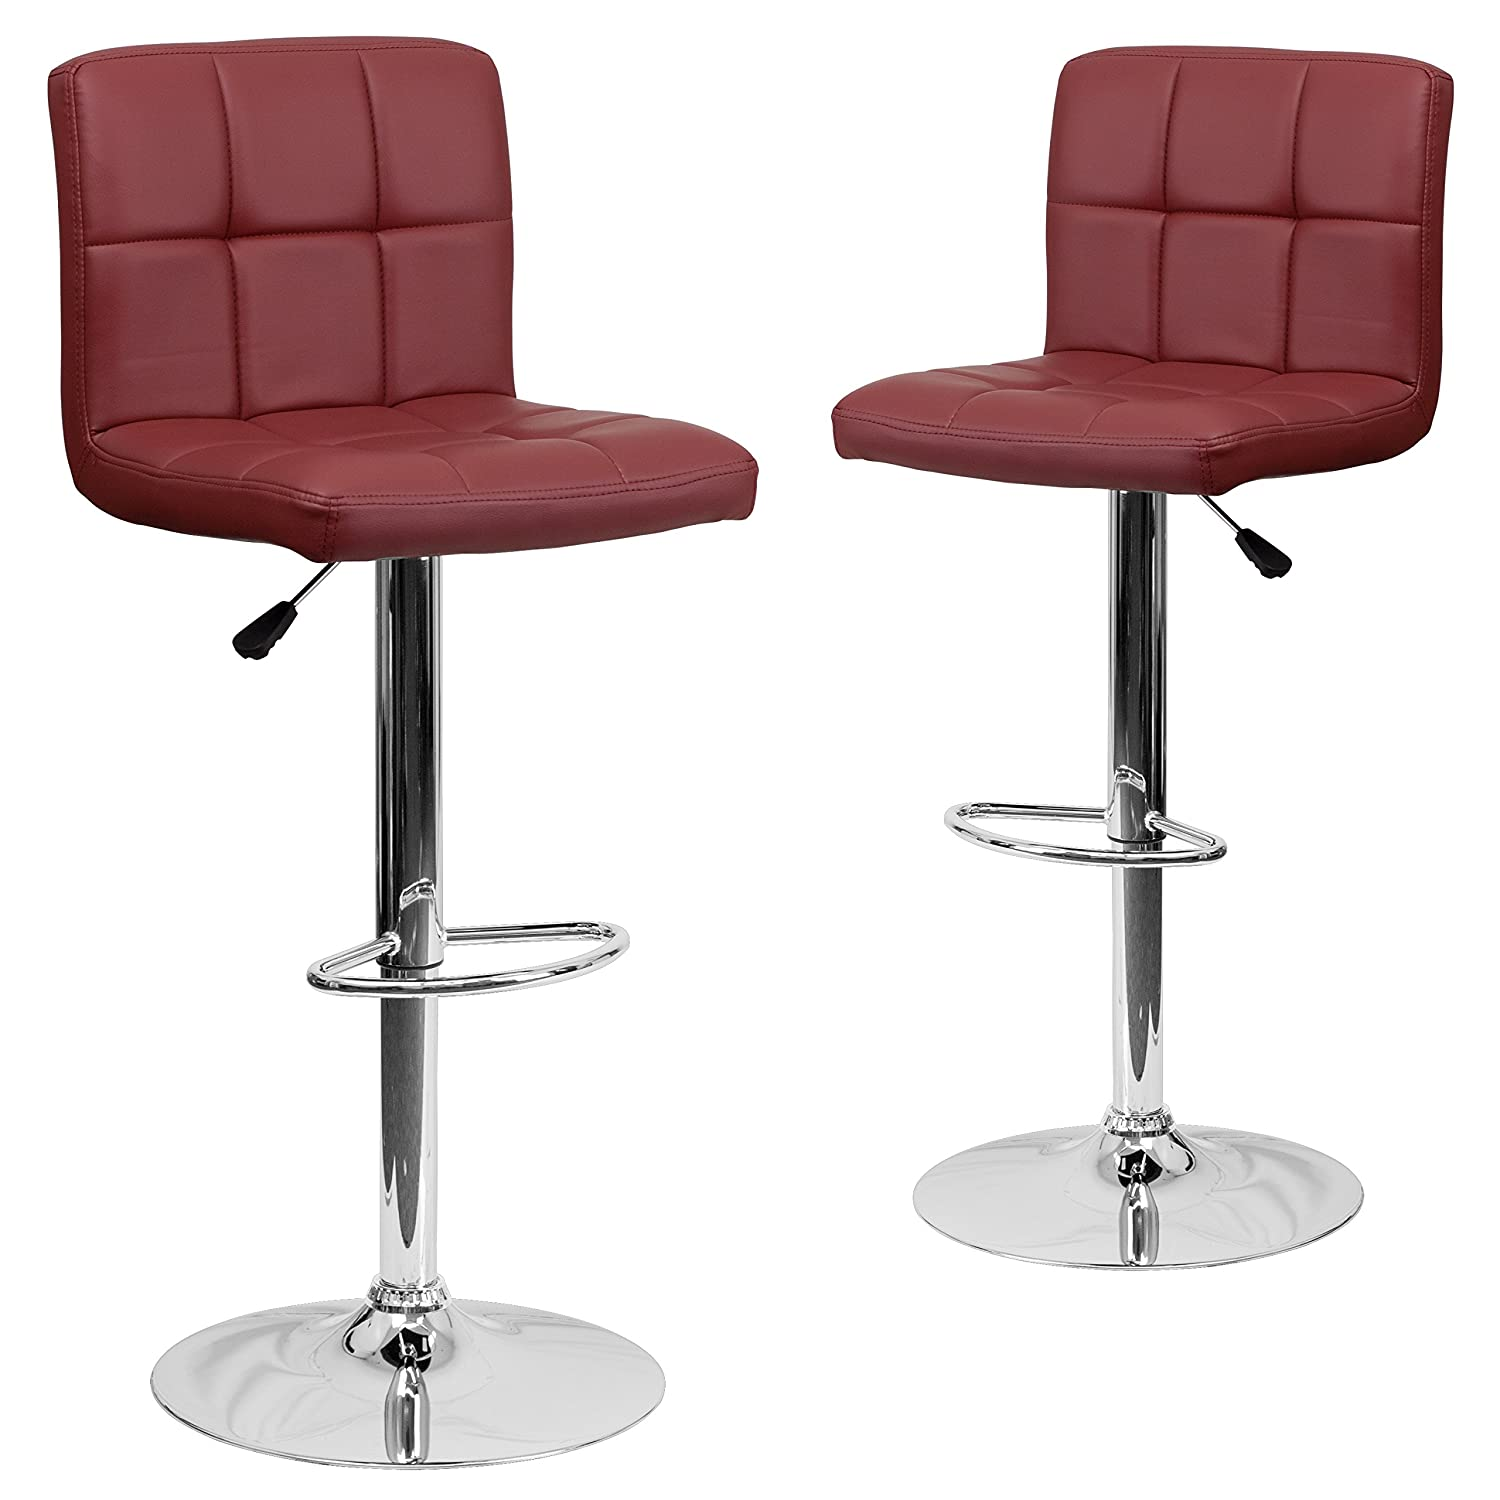 Flash Furniture 2 Pk. Contemporary Burgundy Quilted Vinyl Adjustable Height Barstool with Chrome Base, 2 Pack